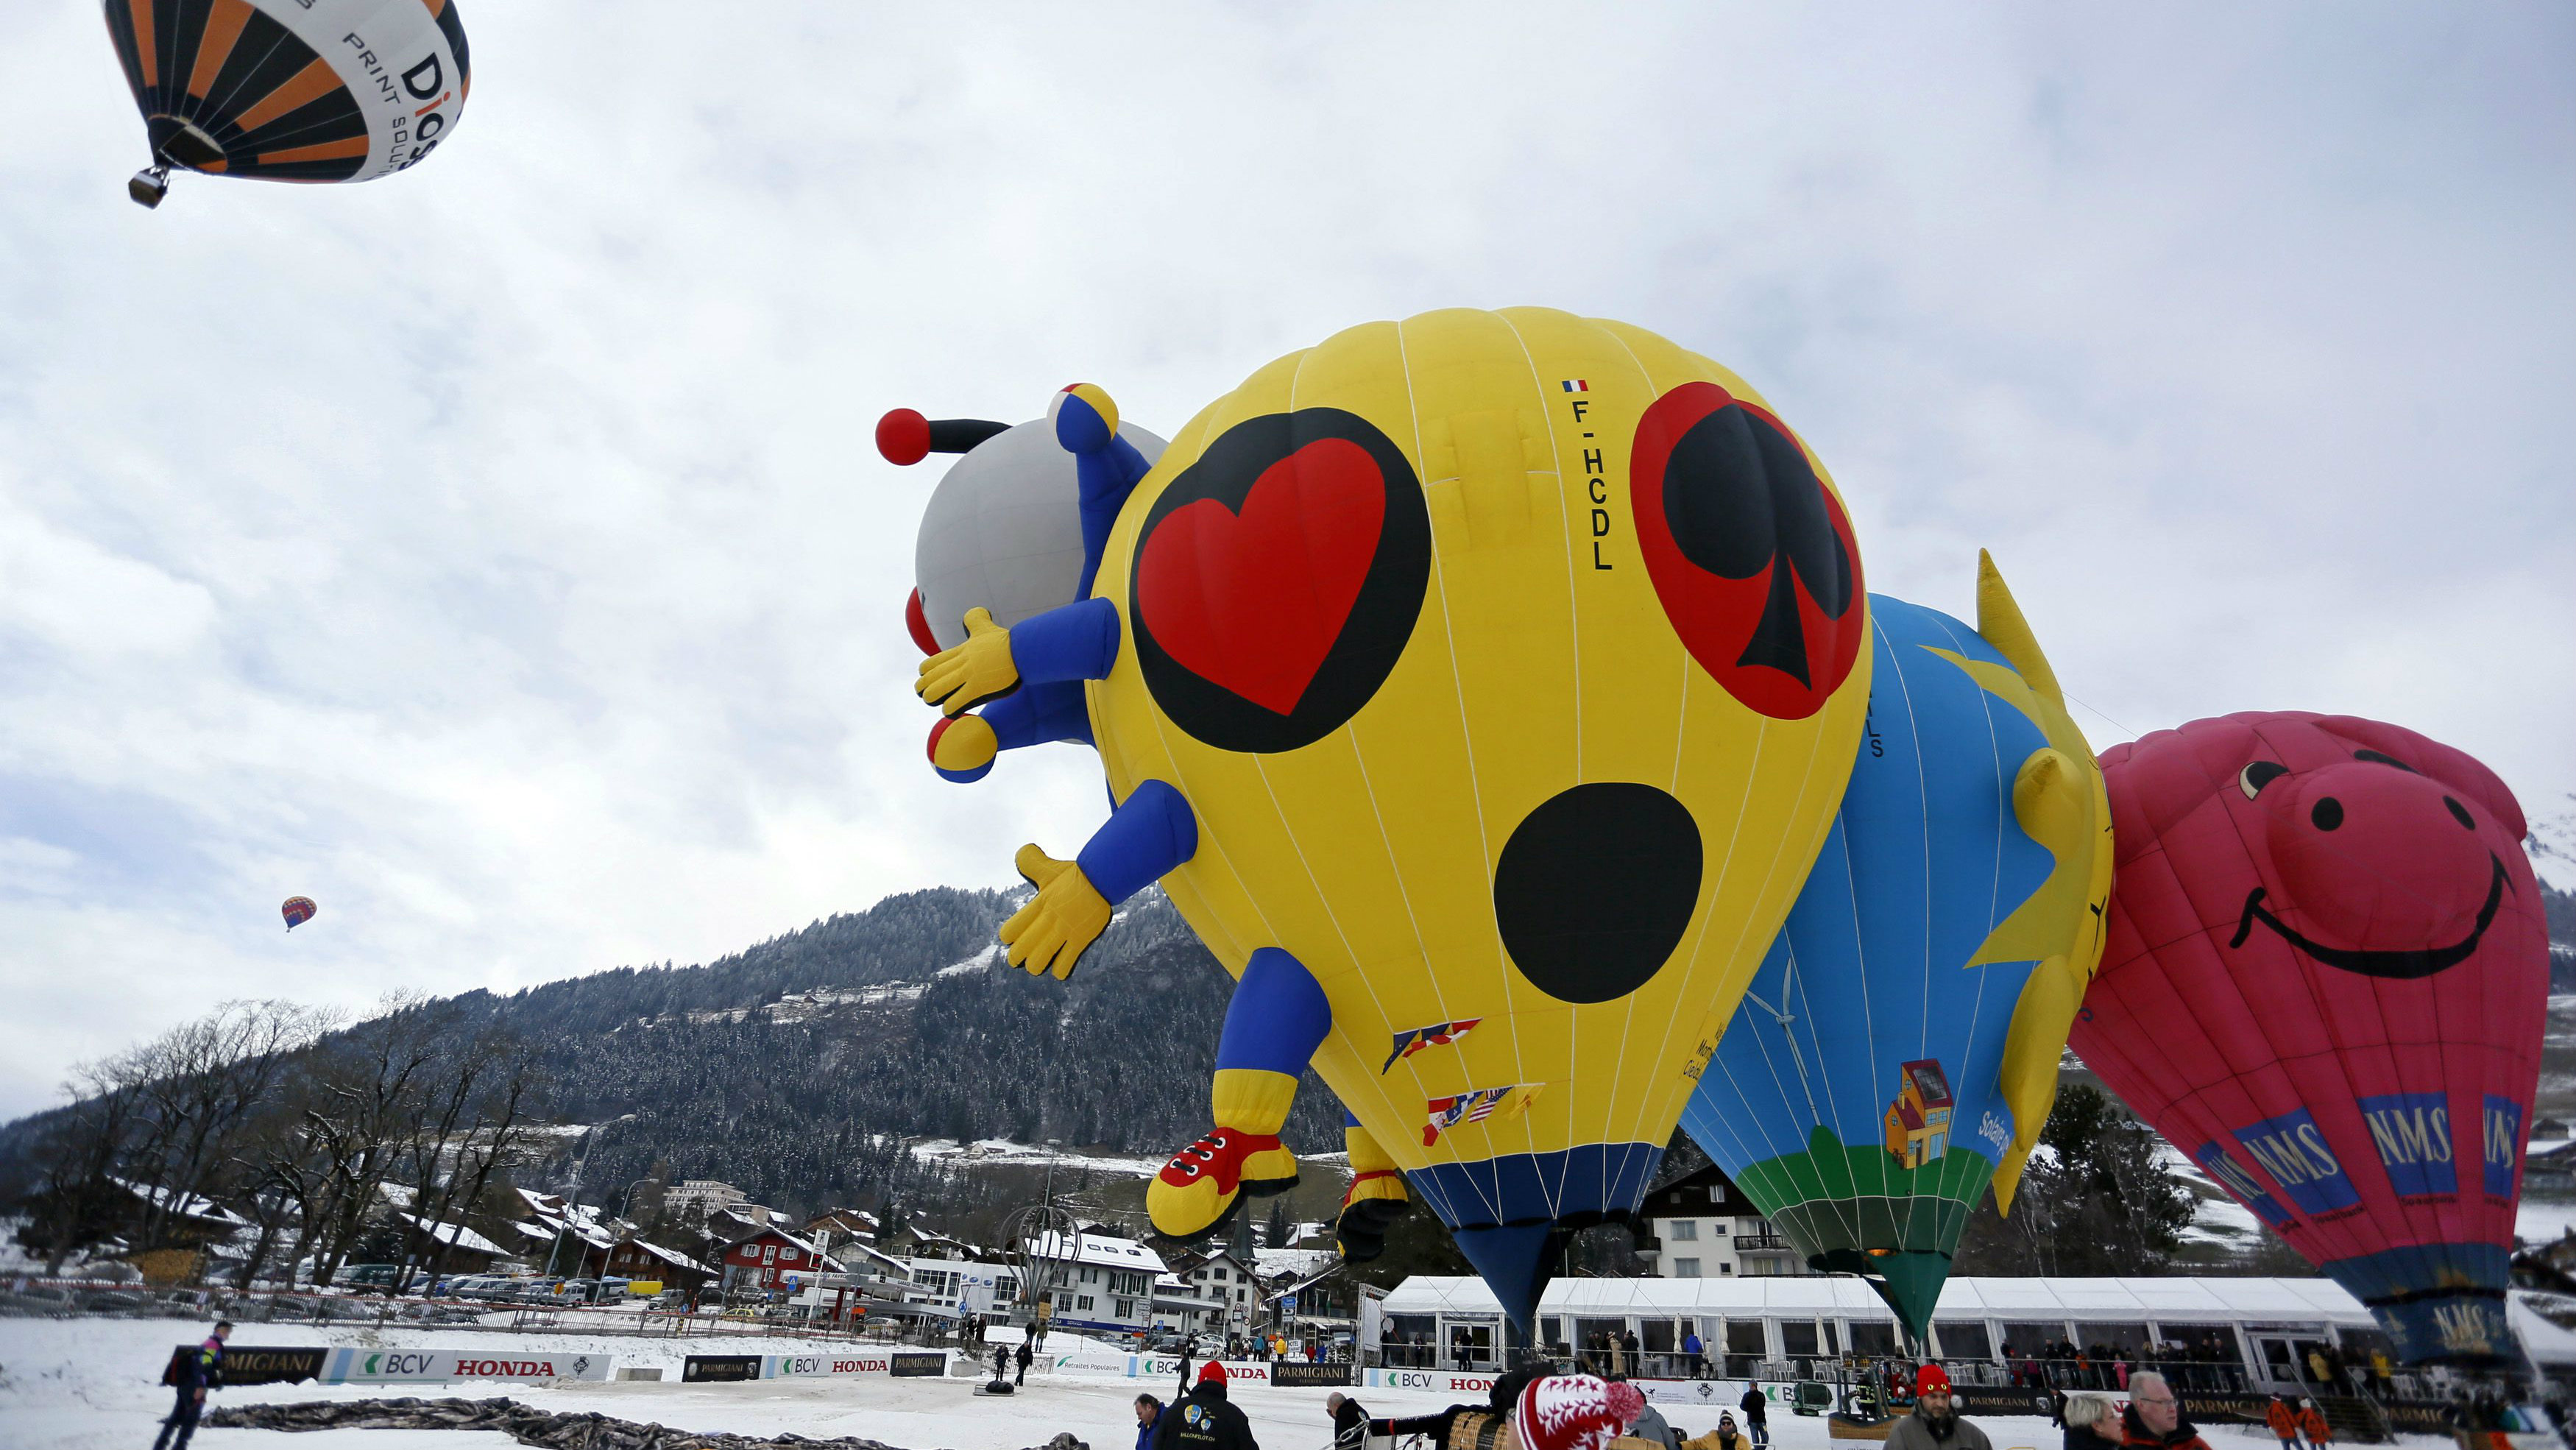 Balloons of all shapes and sizes get ready for take off at the 37th International Hot Air Balloon Week in Chateau-d'Oex, January 24, 2015. According to the organizers, over 80 balloons from 20 countries are participating in the ballooning event in the Swiss mountain resort. REUTERS/Pierre Albouy